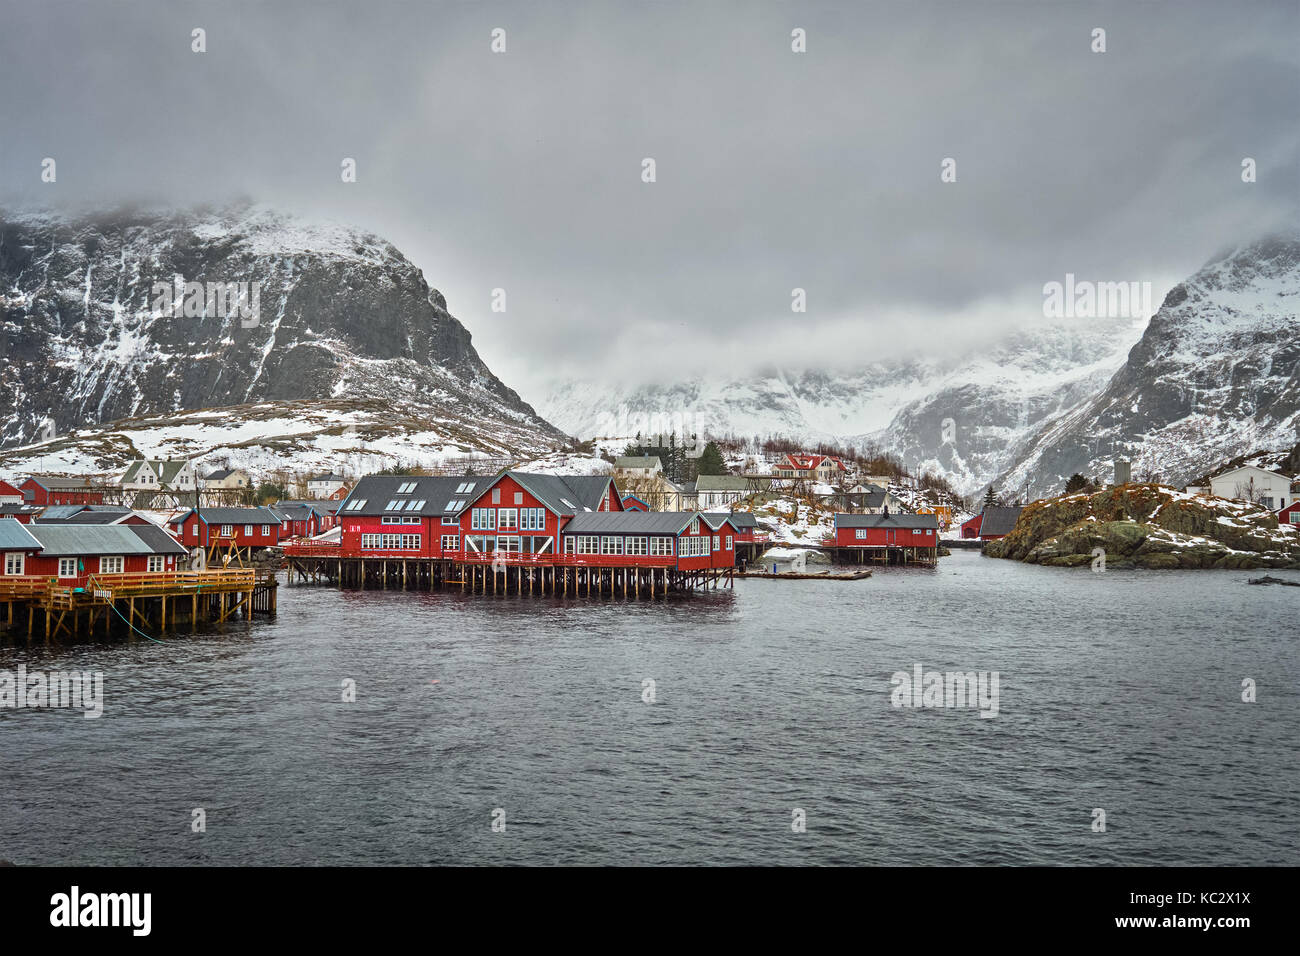 A village on Lofoten Islands, Norway - Stock Image